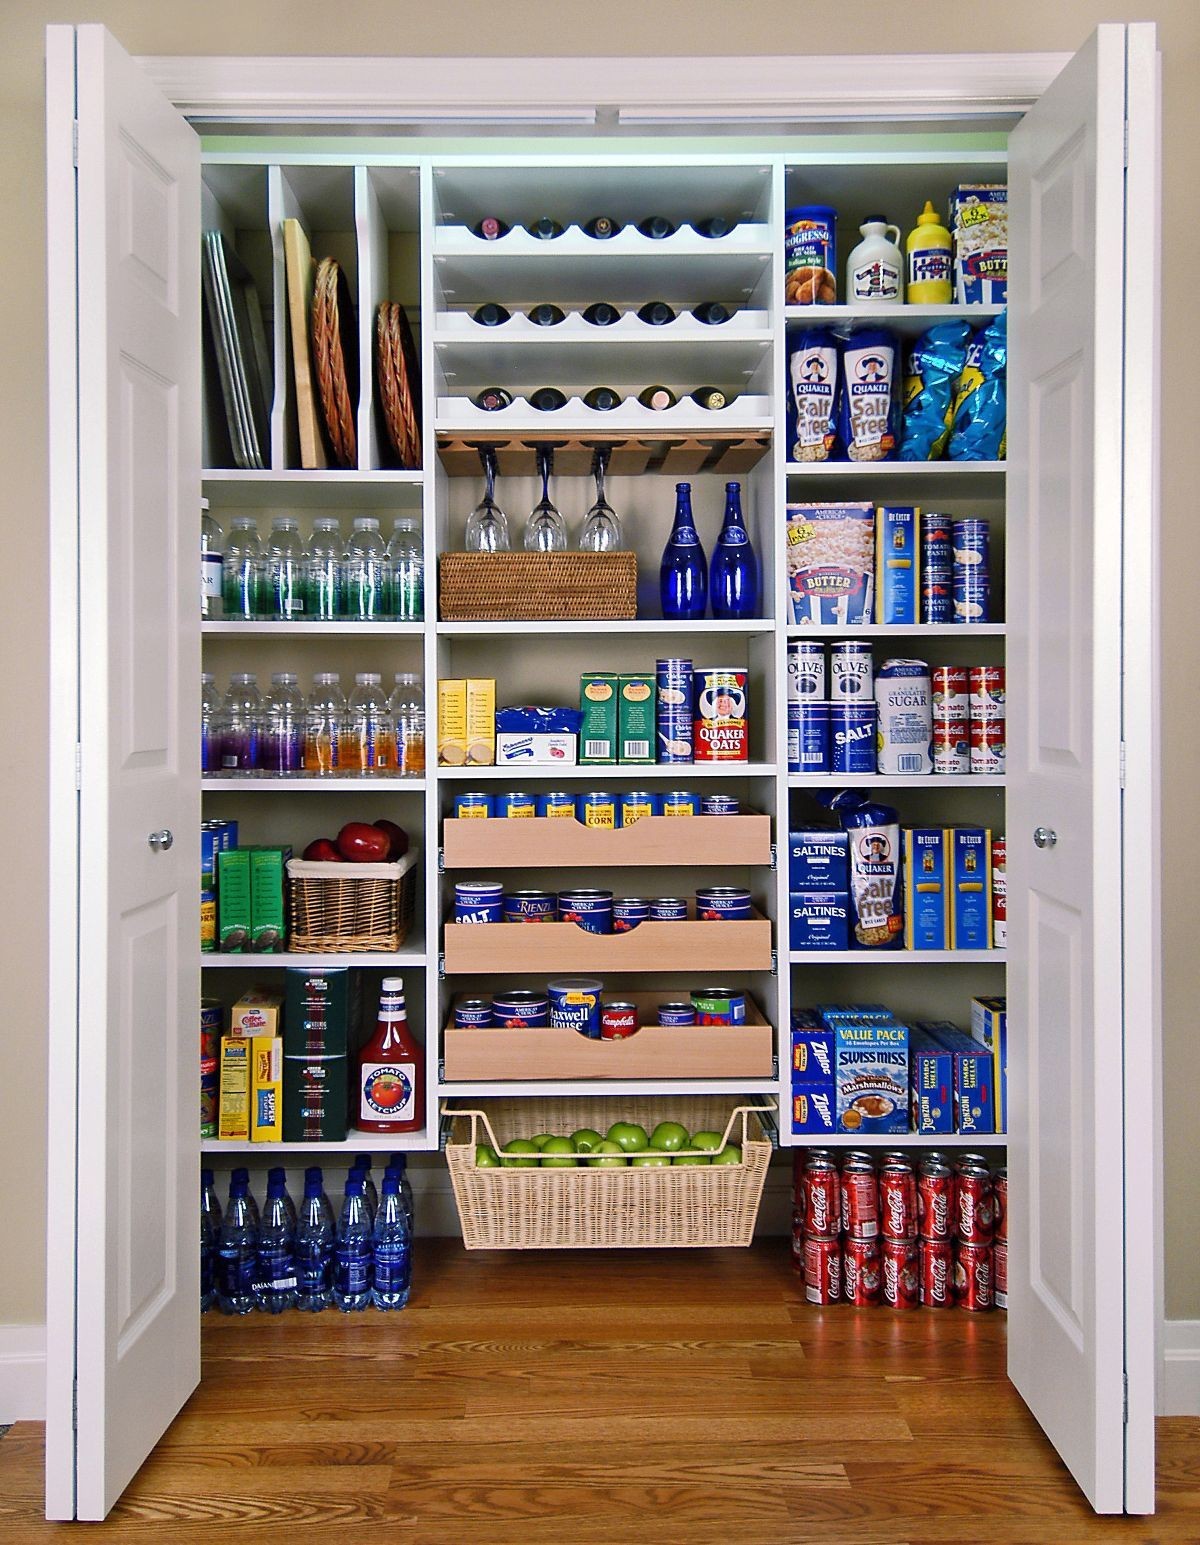 Small Kitchen Pantry Organization 15 Kitchen Pantry Ideas With Form And Function Small Rooms Food